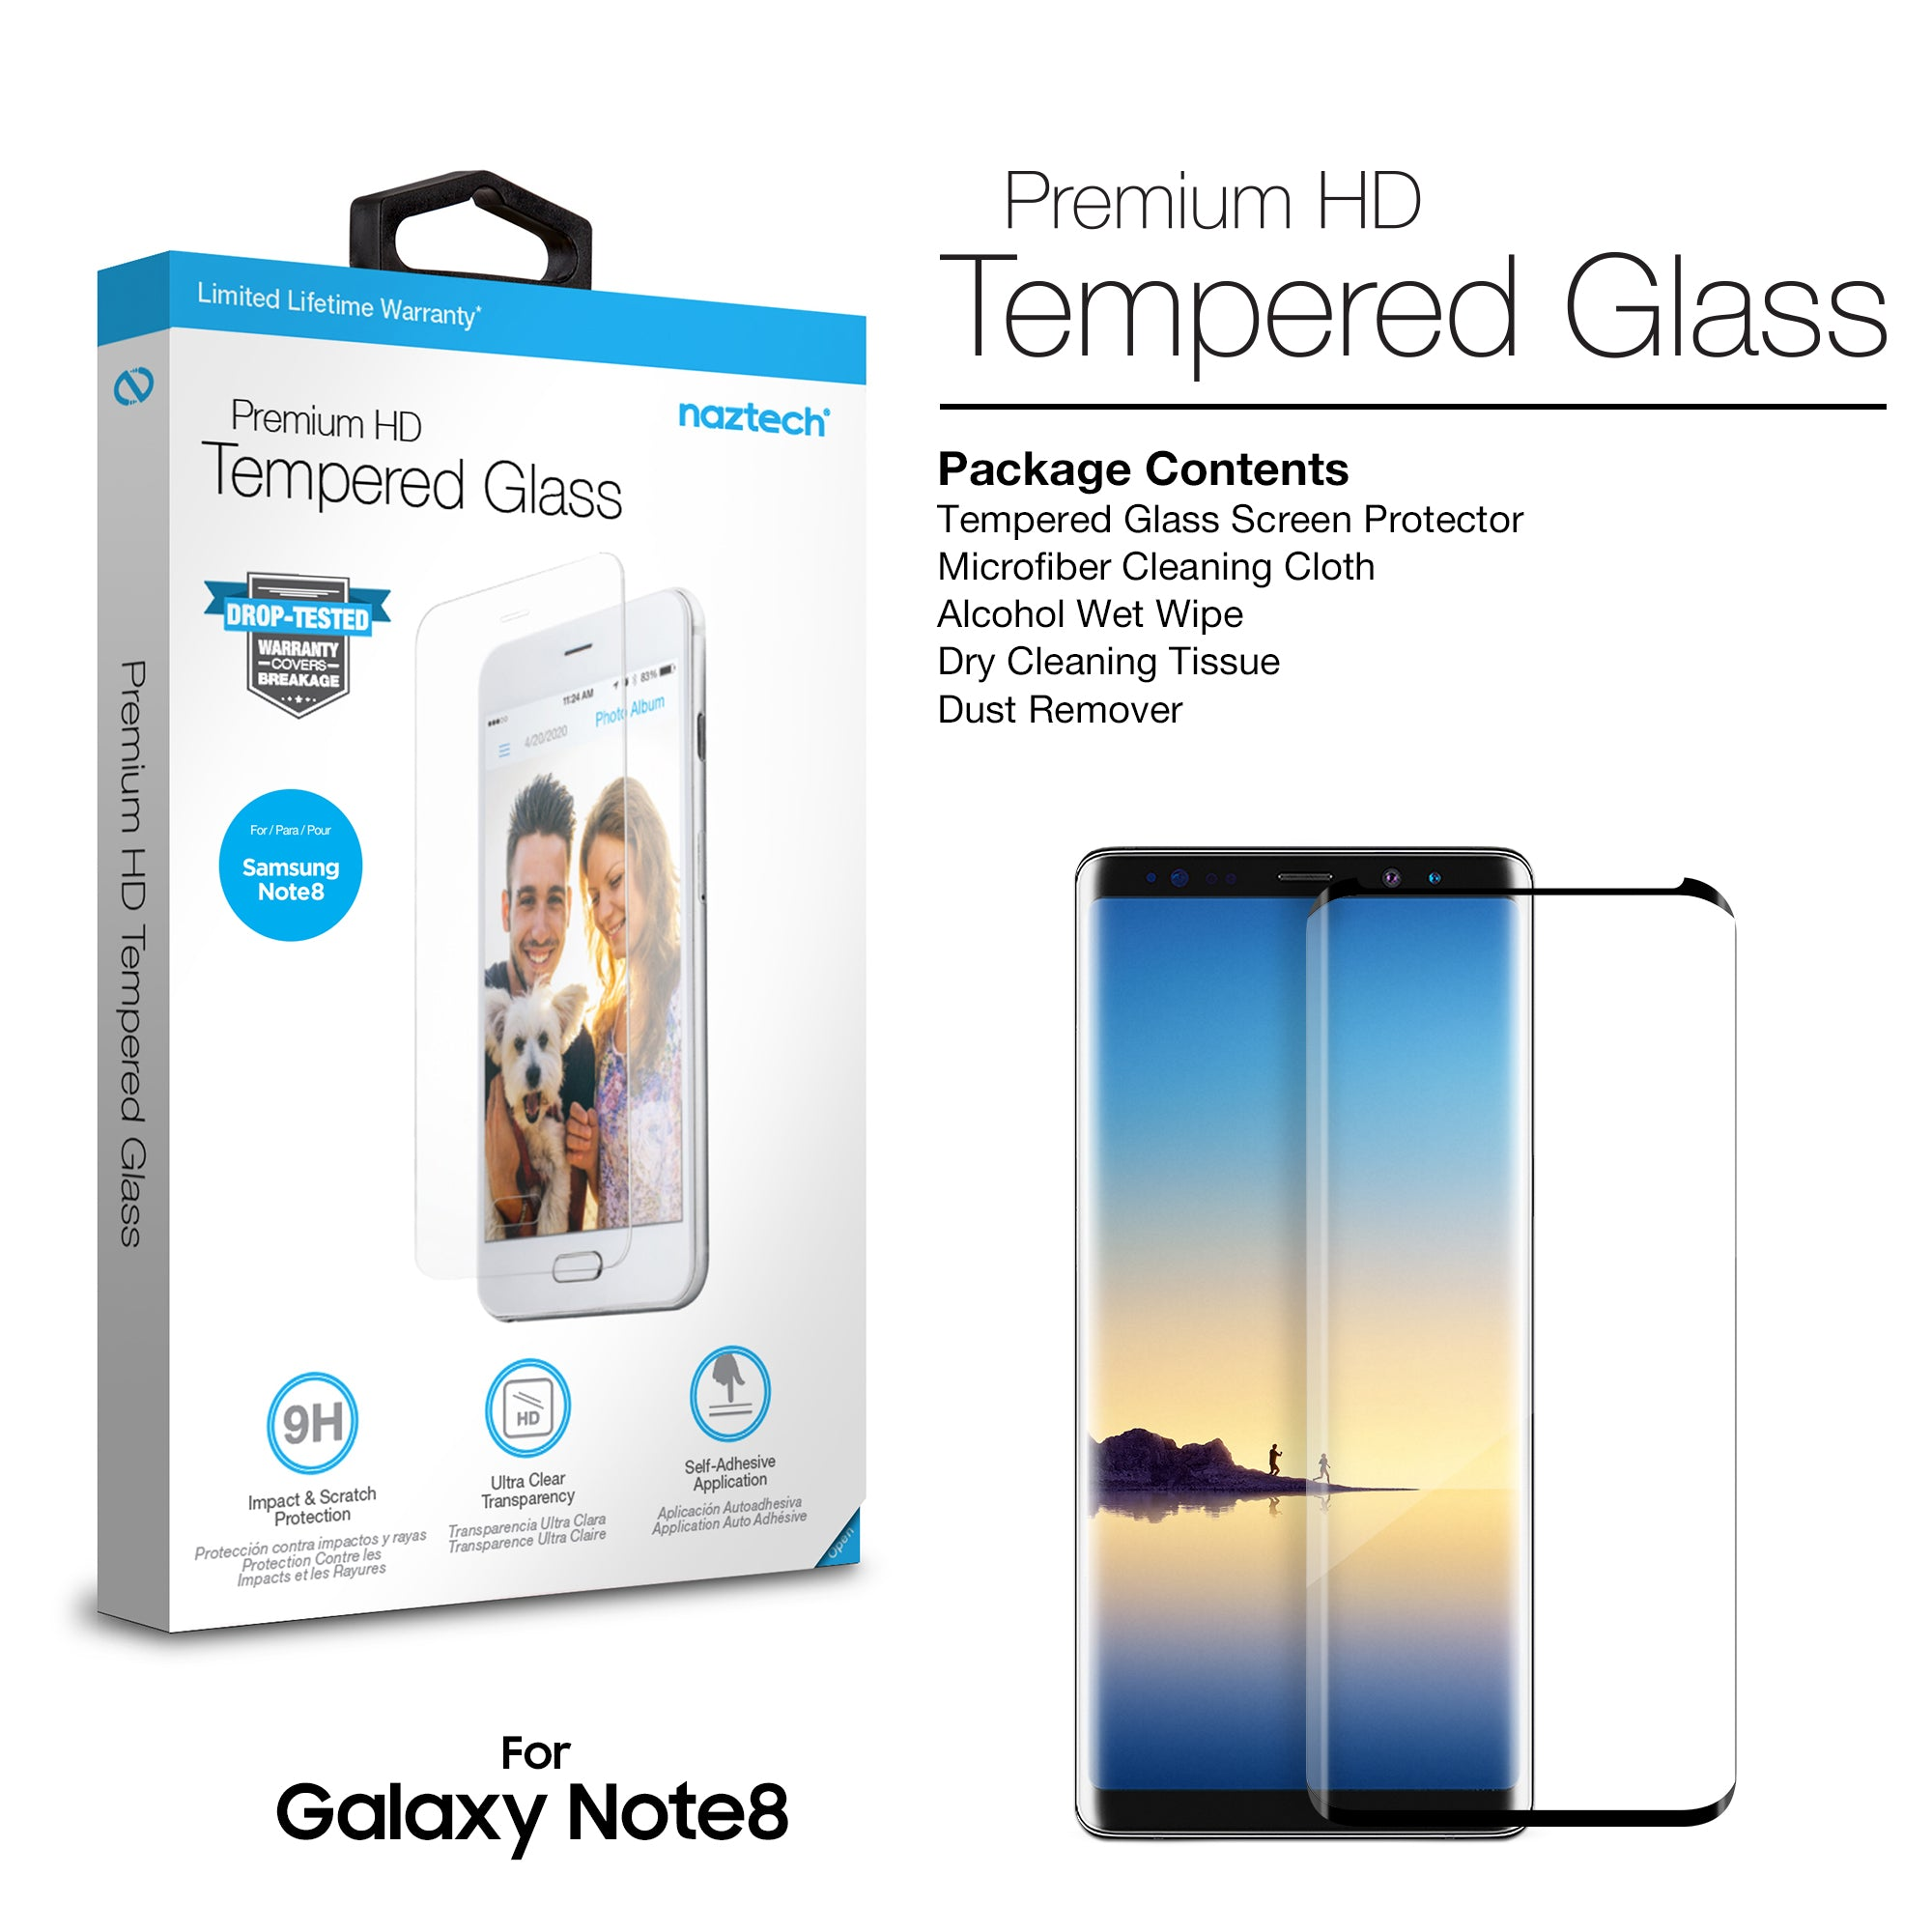 Premium HD Tempered Glass Screen Protector for Galaxy Note8